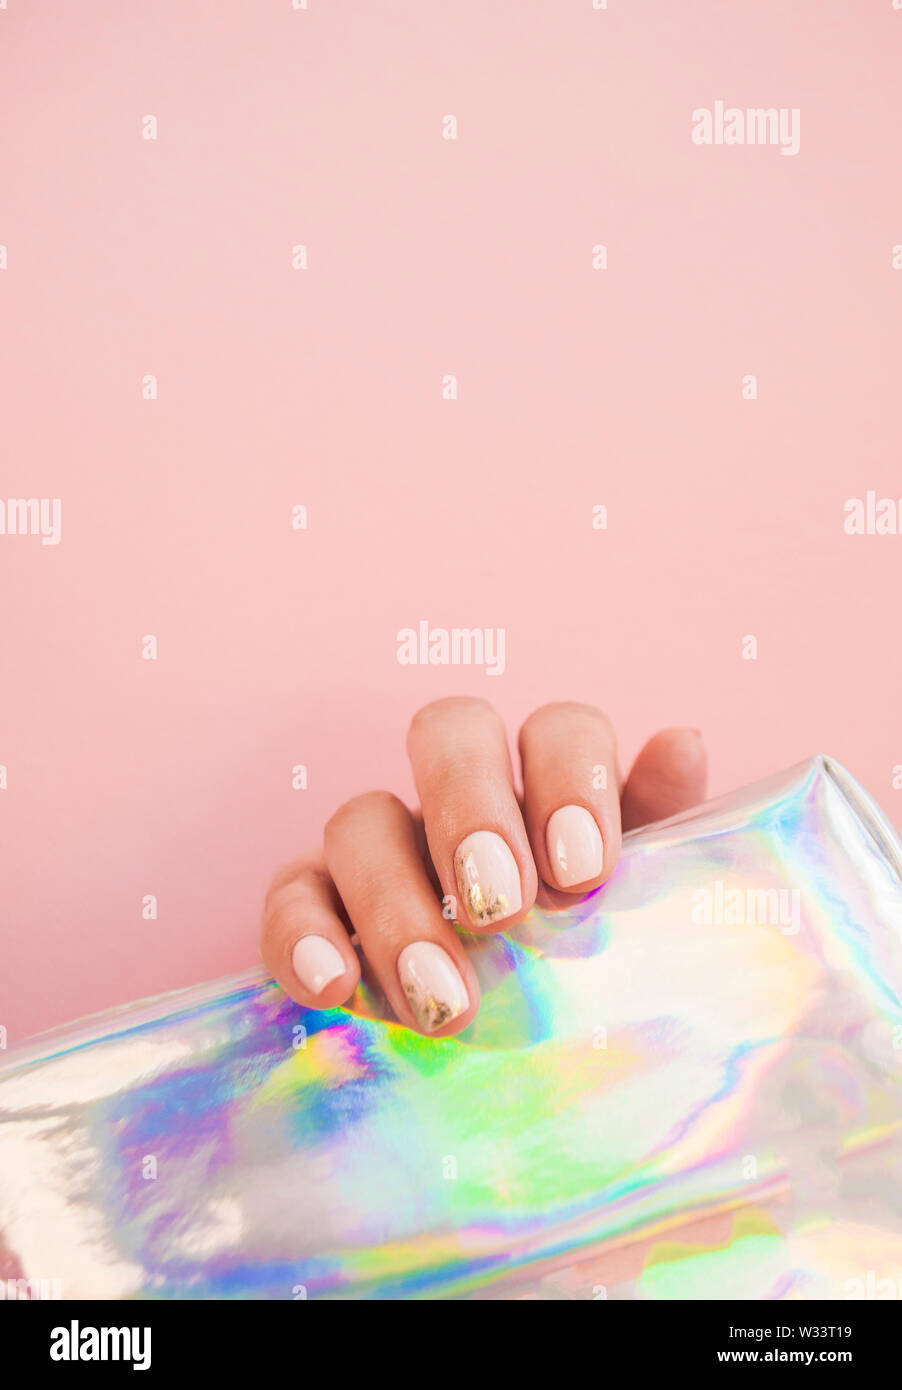 Young woman's hand with beautiful manicure on beige background holding metallic holographic paper. - Stock Image